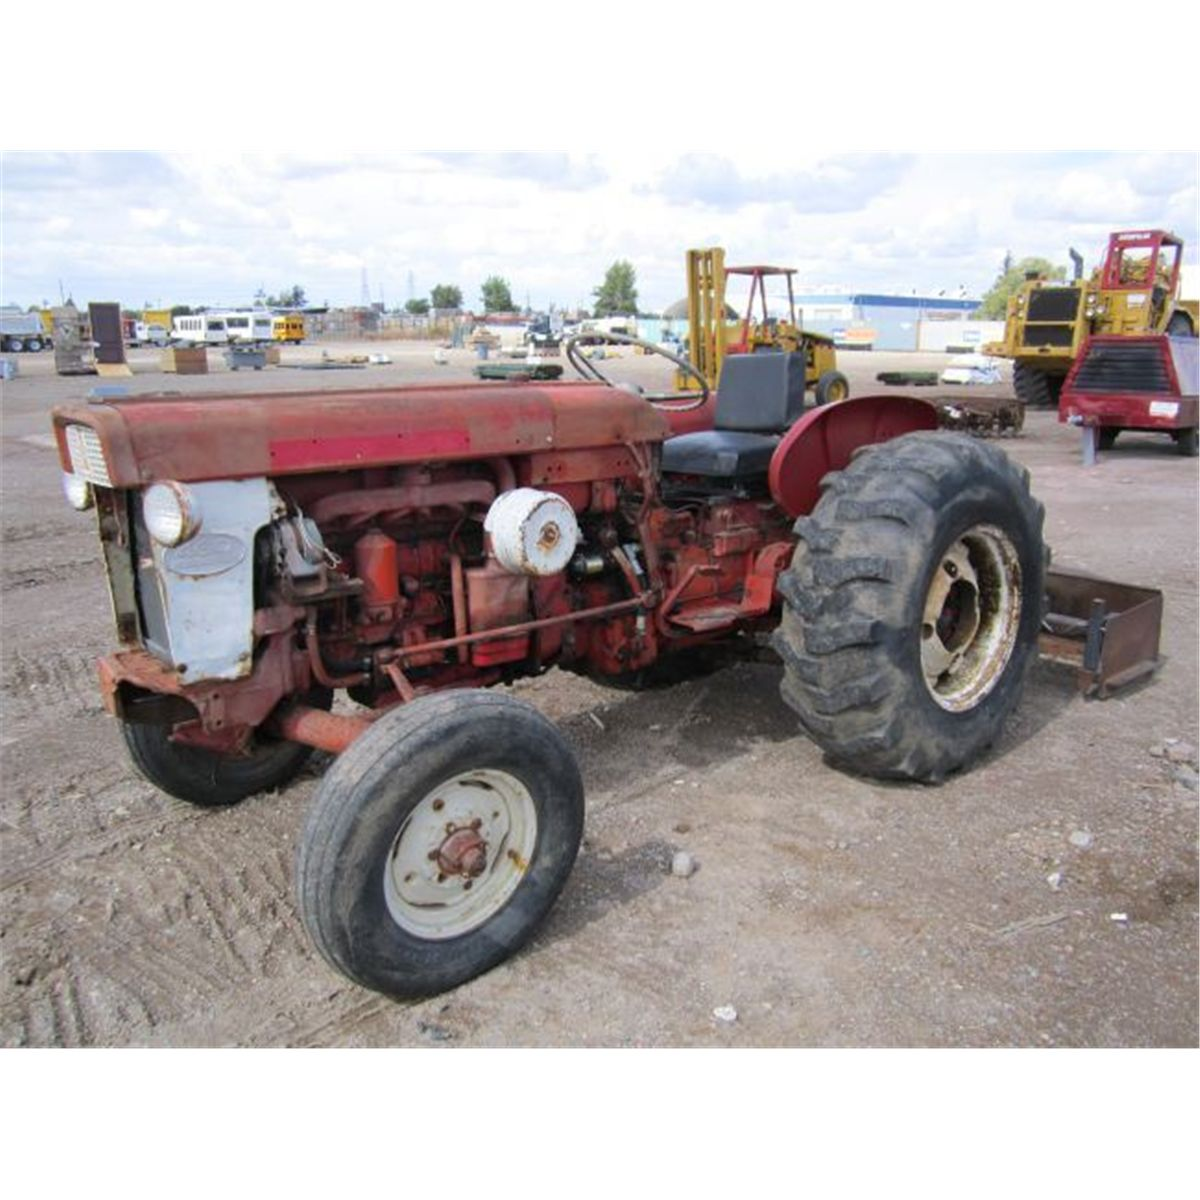 Ih 460 Utility Tractor : International harvester diesel utility ag tractor